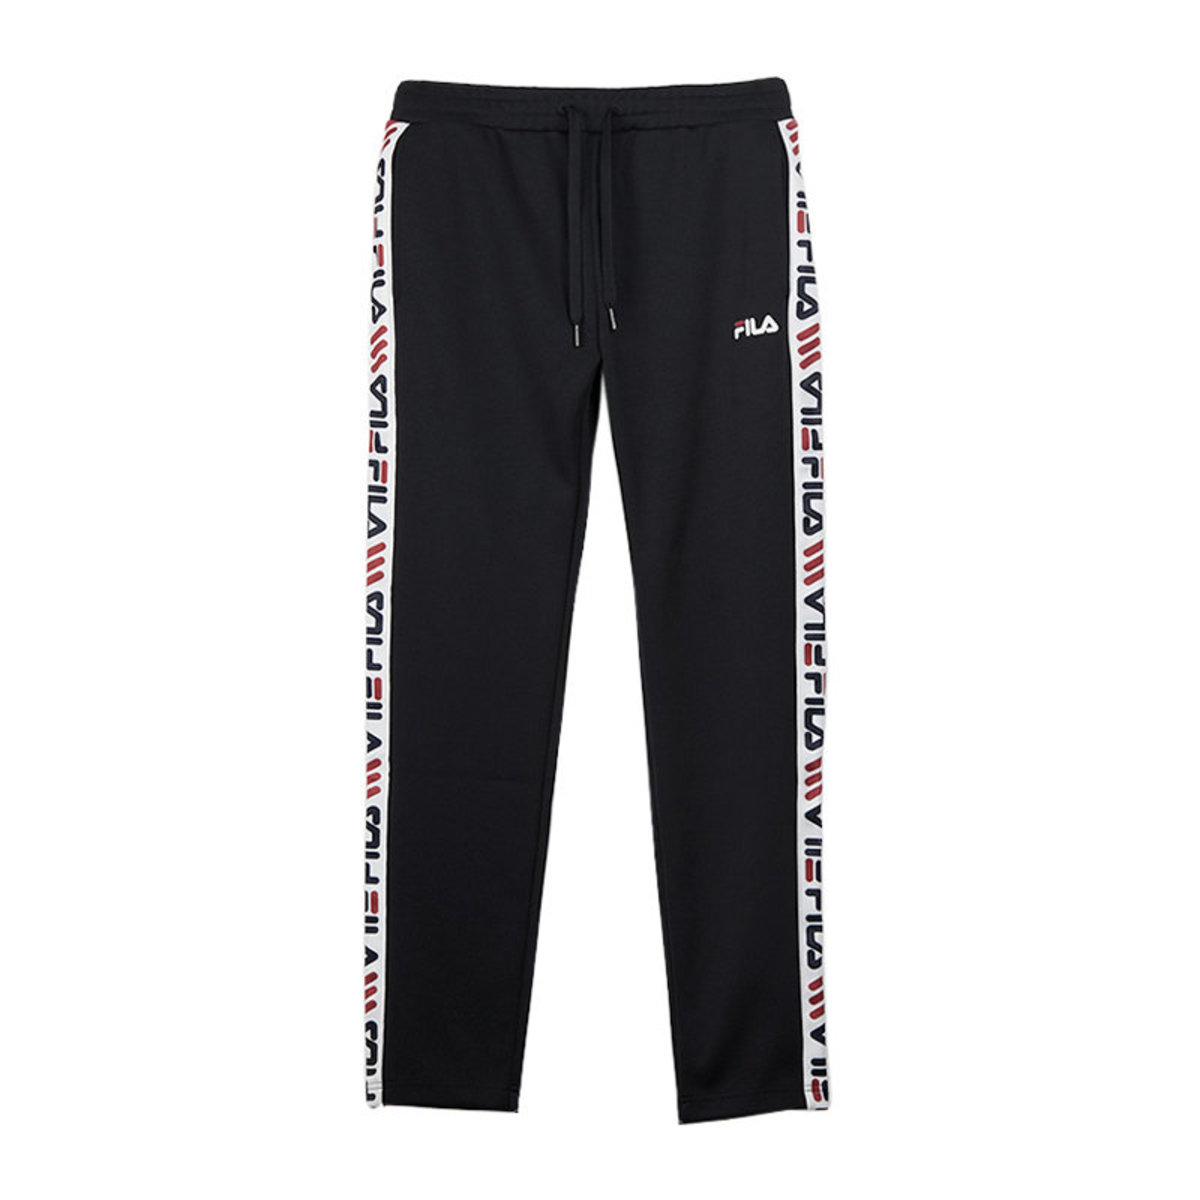 Korea Collection Unisex Side Taped Pants